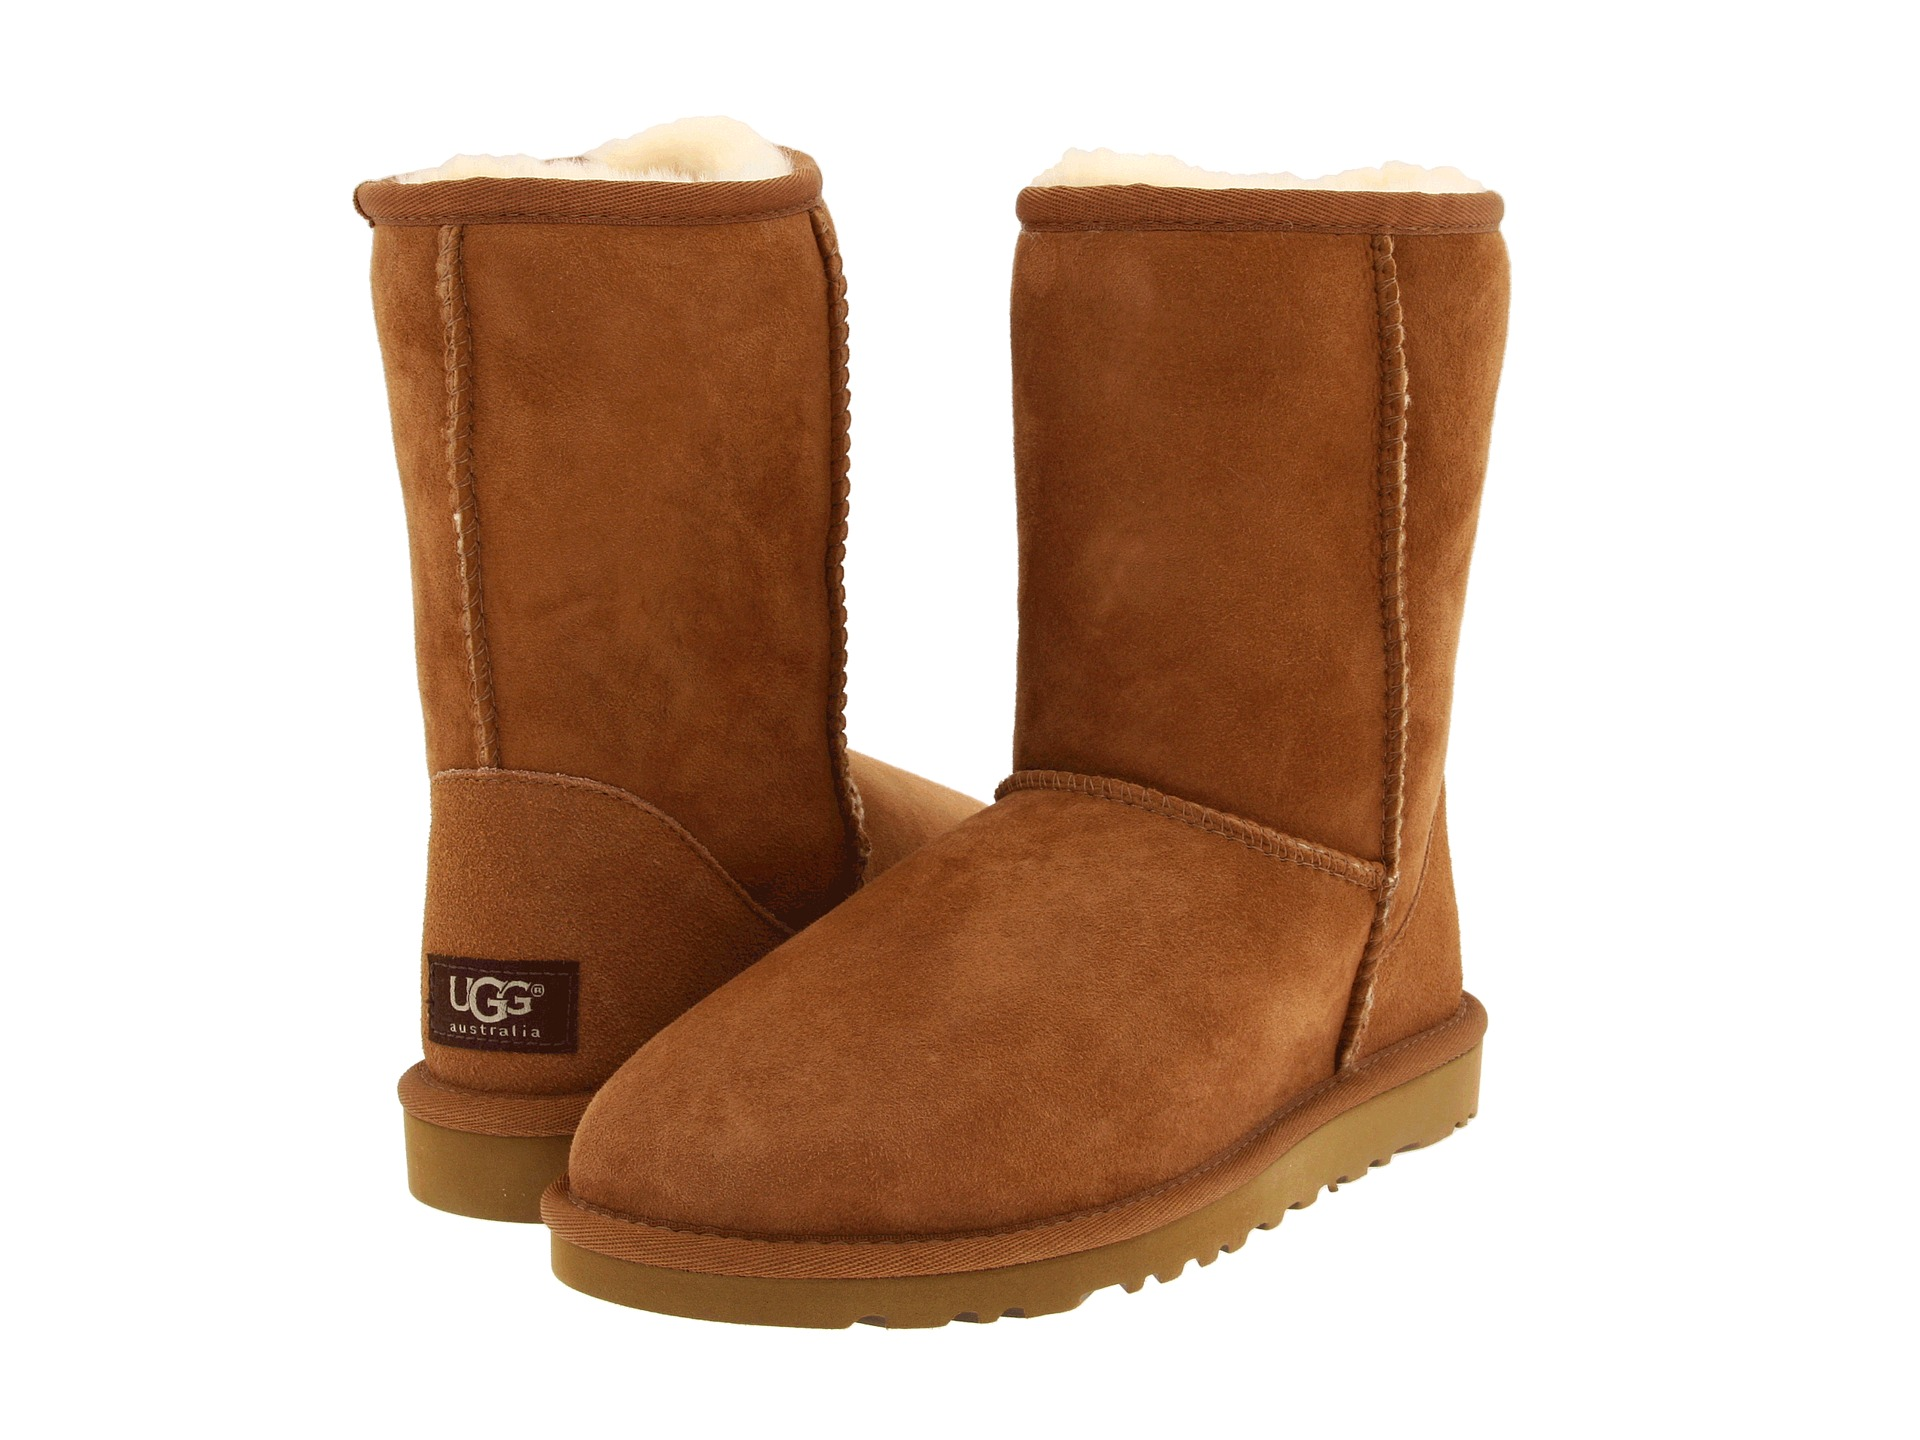 Keep your feet warm and dry with our range of snow boots here at Kurt Geiger. Choose from a variety of snow boots perfect for beating the cold in style.